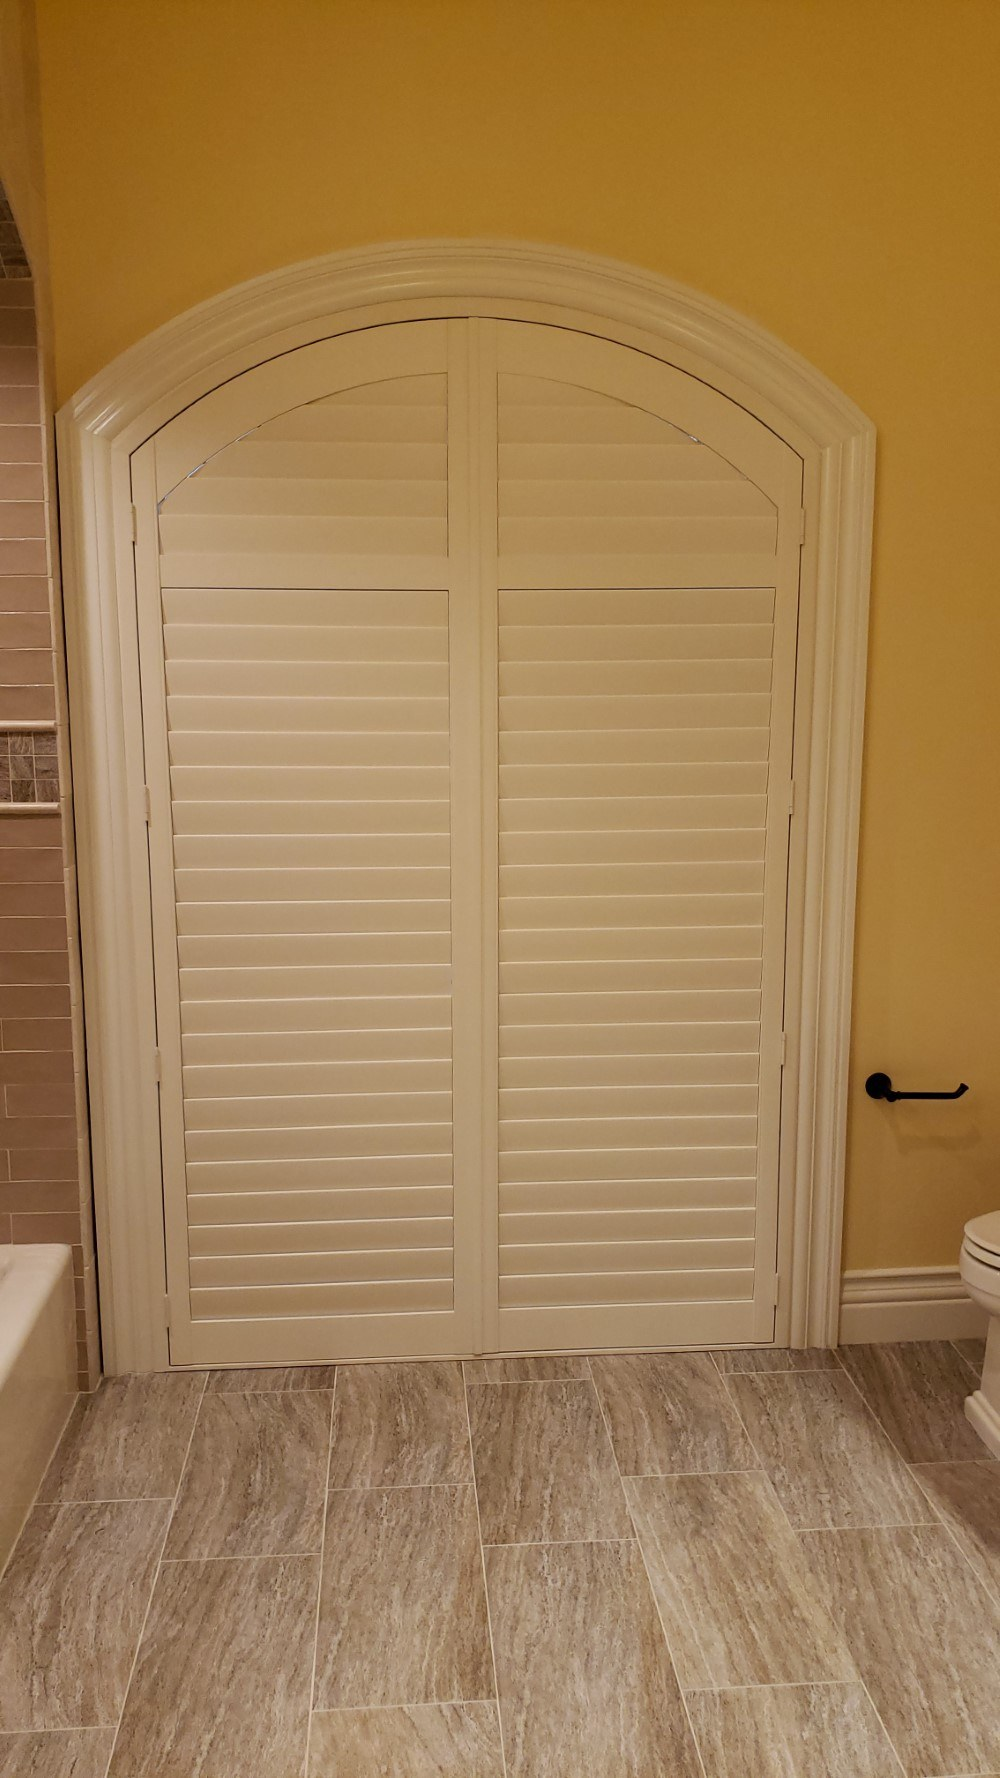 Latest Projects - Elegant Painted Wood Shutters in Shavano Park, TX